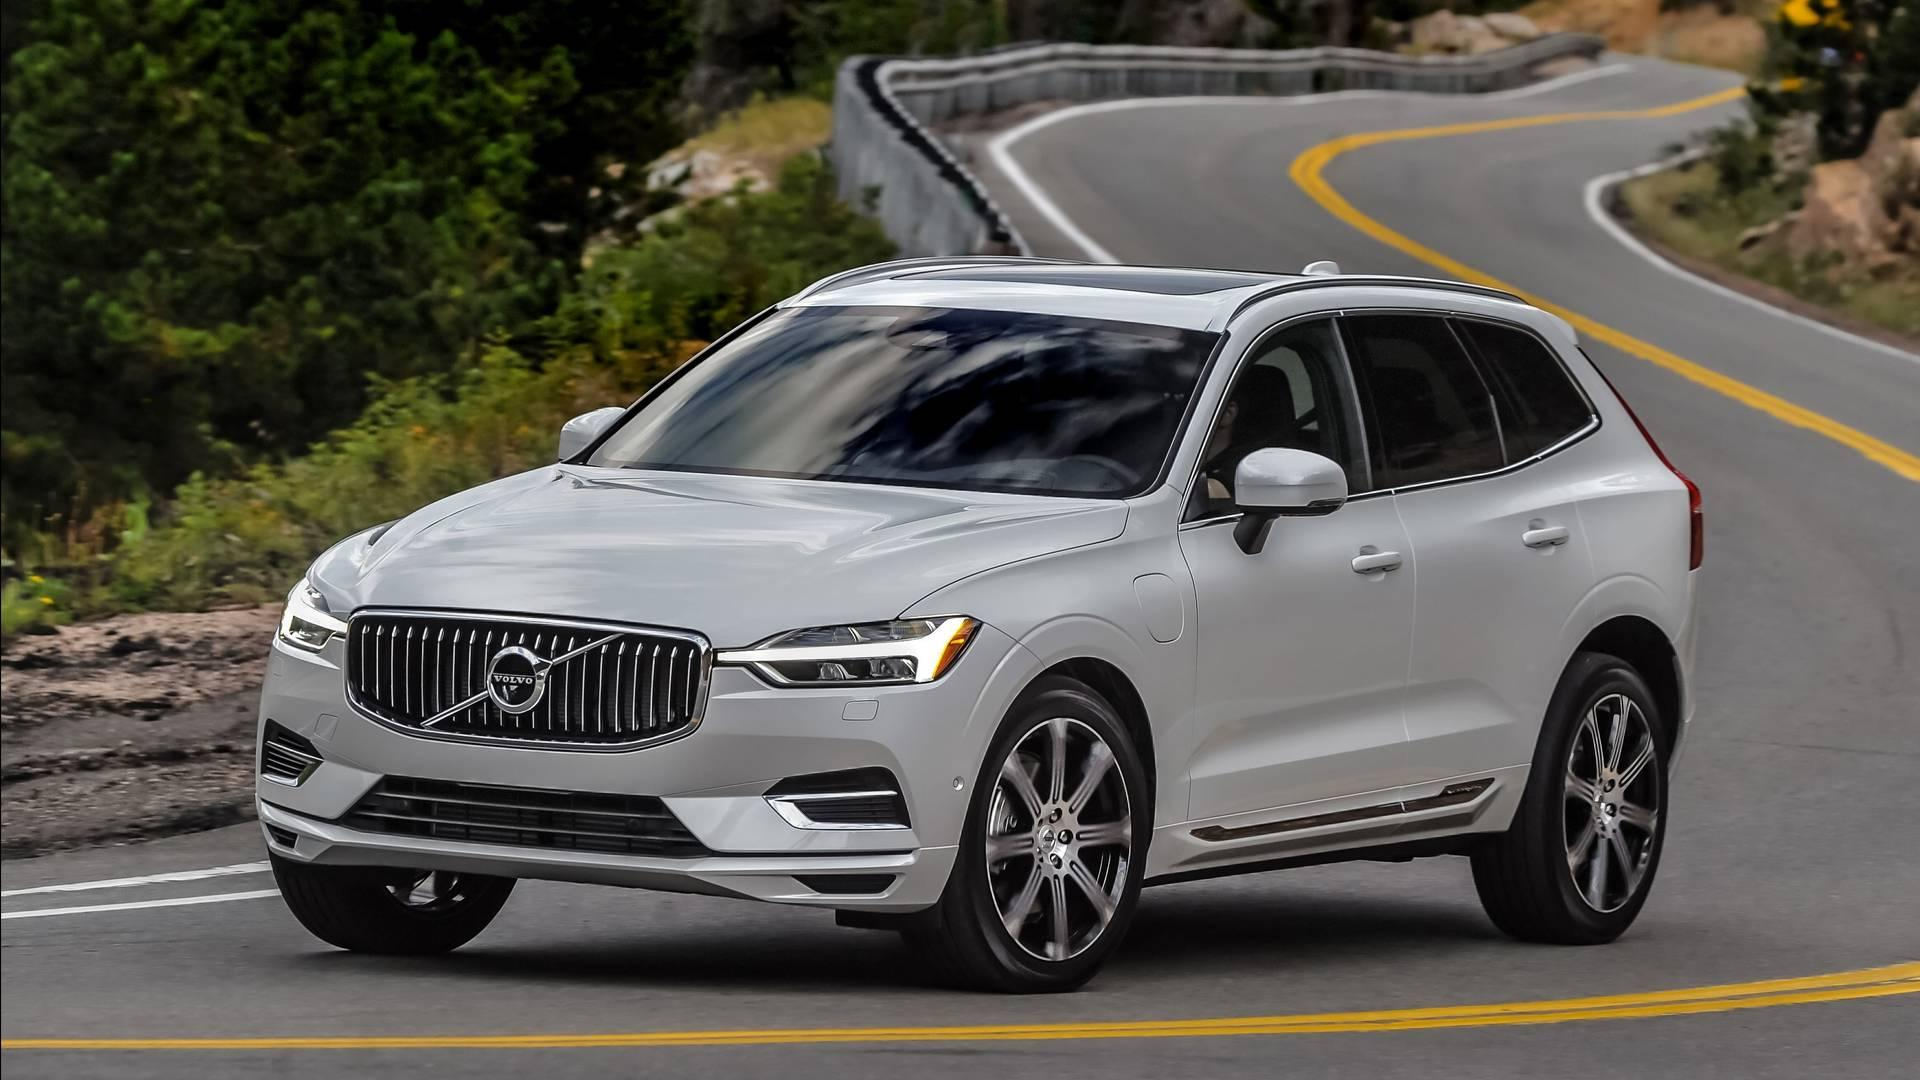 """<p>Nicely redesigned for 2018, the <a href=""""https://www.motor1.com/volvo/xc60/"""" rel=""""nofollow noopener"""" target=""""_blank"""" data-ylk=""""slk:Volvo XC60"""" class=""""link rapid-noclick-resp"""">Volvo XC60</a> crossover SUV continues the brand's tradition for safety with several of the latest high-tech accident avoidance systems standard. These include a forward crash alert, and both high- and low-speed auto-braking systems, with the latter able to help the vehicle avoid hitting another car, pedestrian, bicyclist or large animal in its path (it also includes a steering-assist function in case braking isn't enough to avoid a crash). A lane-departure warning system with lane keeping assist is also included across the line, with a blind-spot warning with rear cross-traffic alert and steering assistance optional as part of the Vision Package.</p>"""